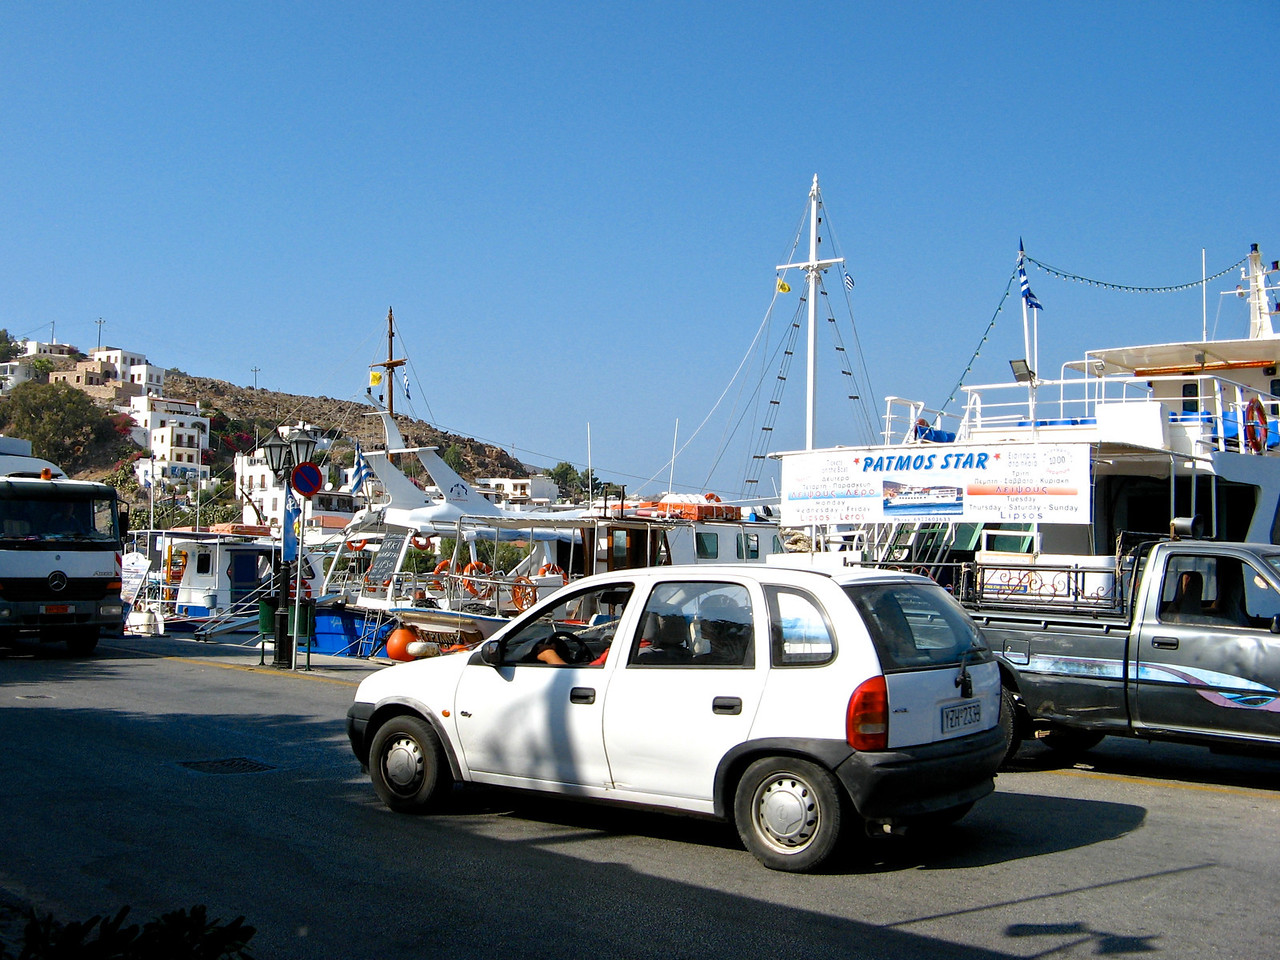 There are ferries between Patmos and some of the other islands that go twice a day.